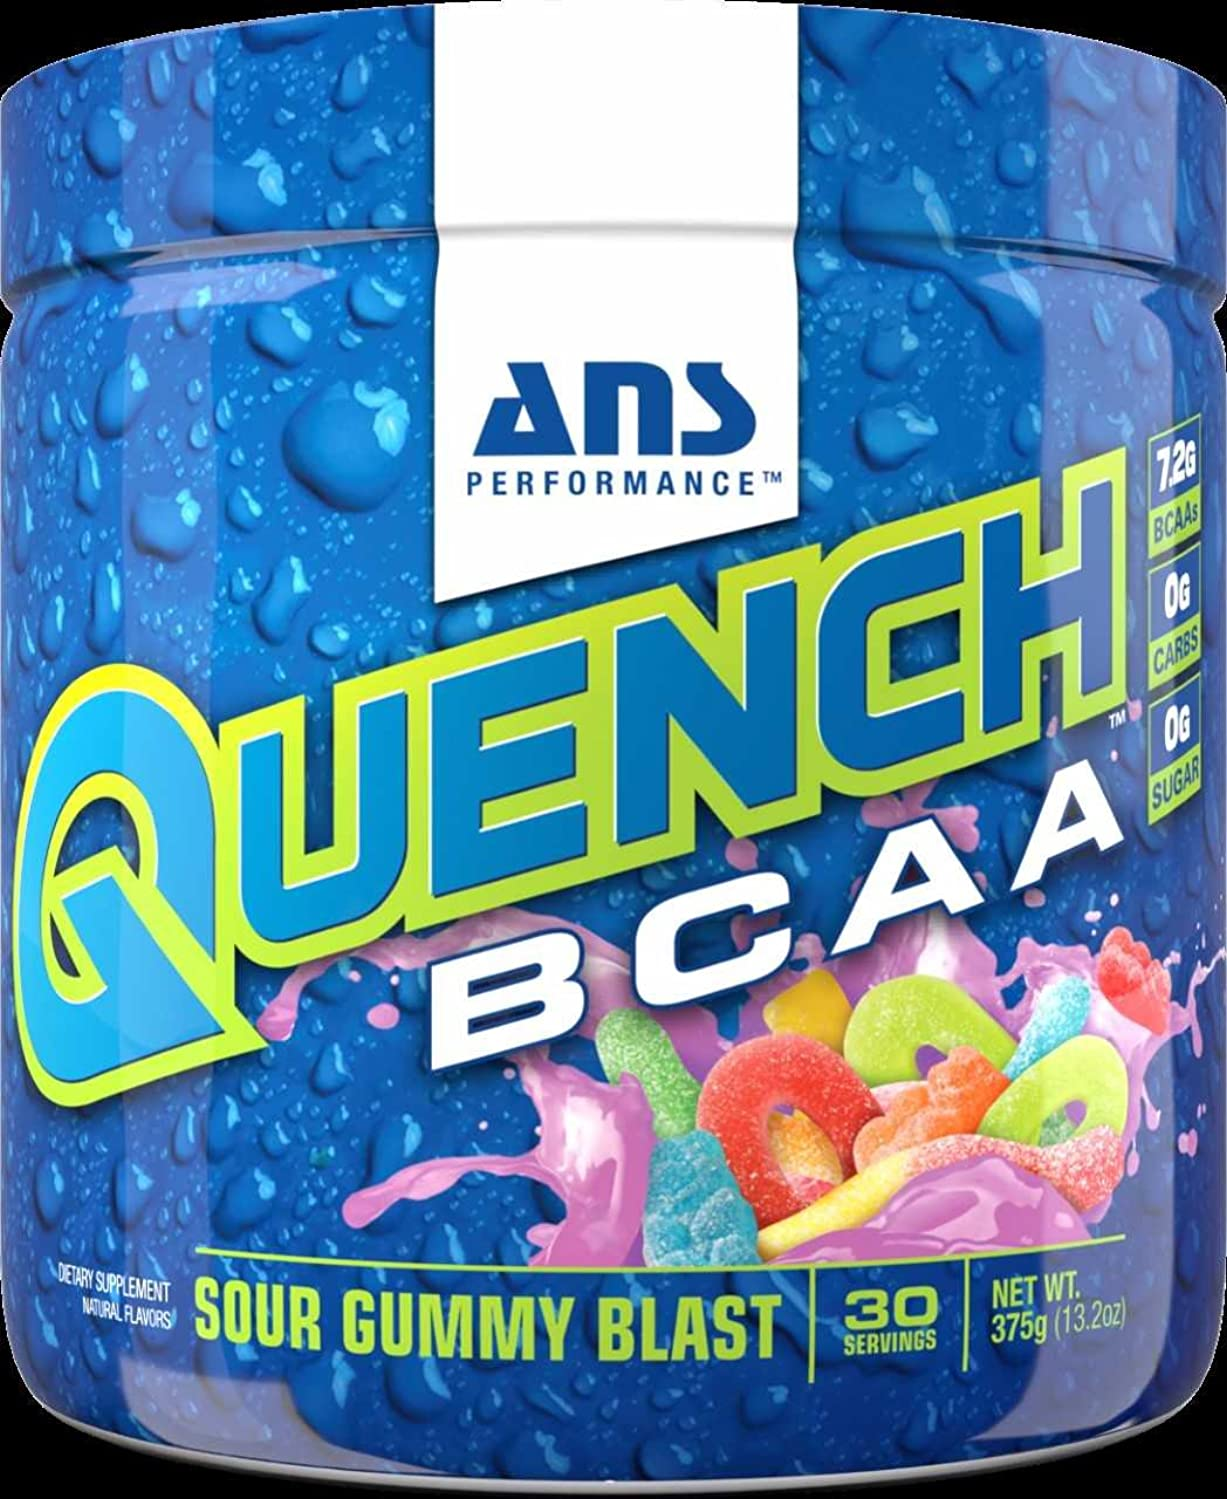 ANS Performance Quench BCAA, Branched Chain Amino Acid Recovery Drink, Sour Gummy Blast, 375g